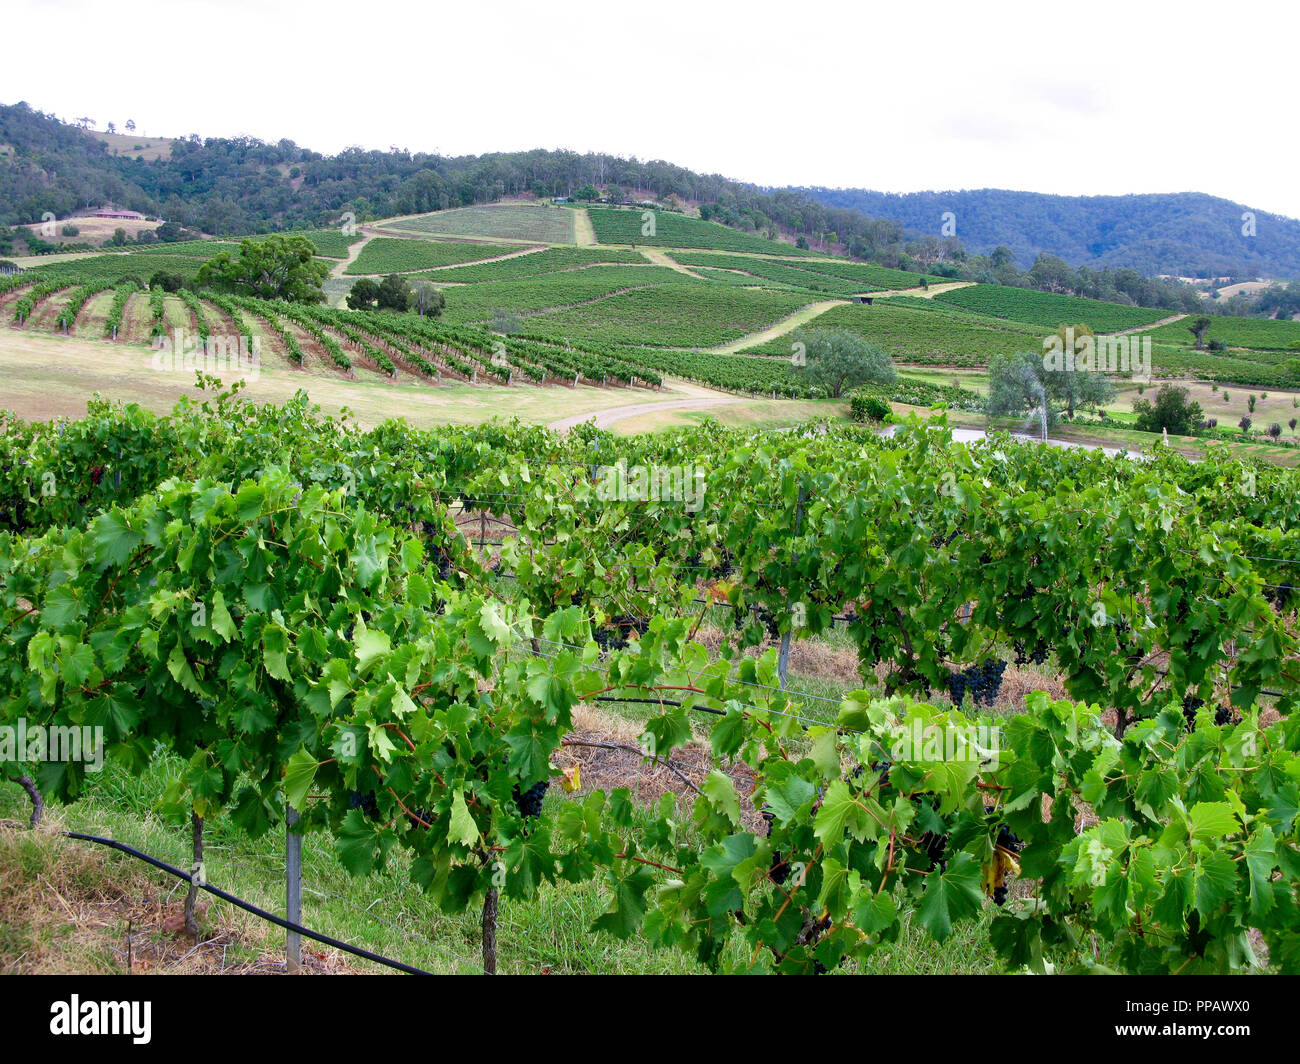 HUNTER VALLEY Australia New South Wales is the Vine region - Stock Image